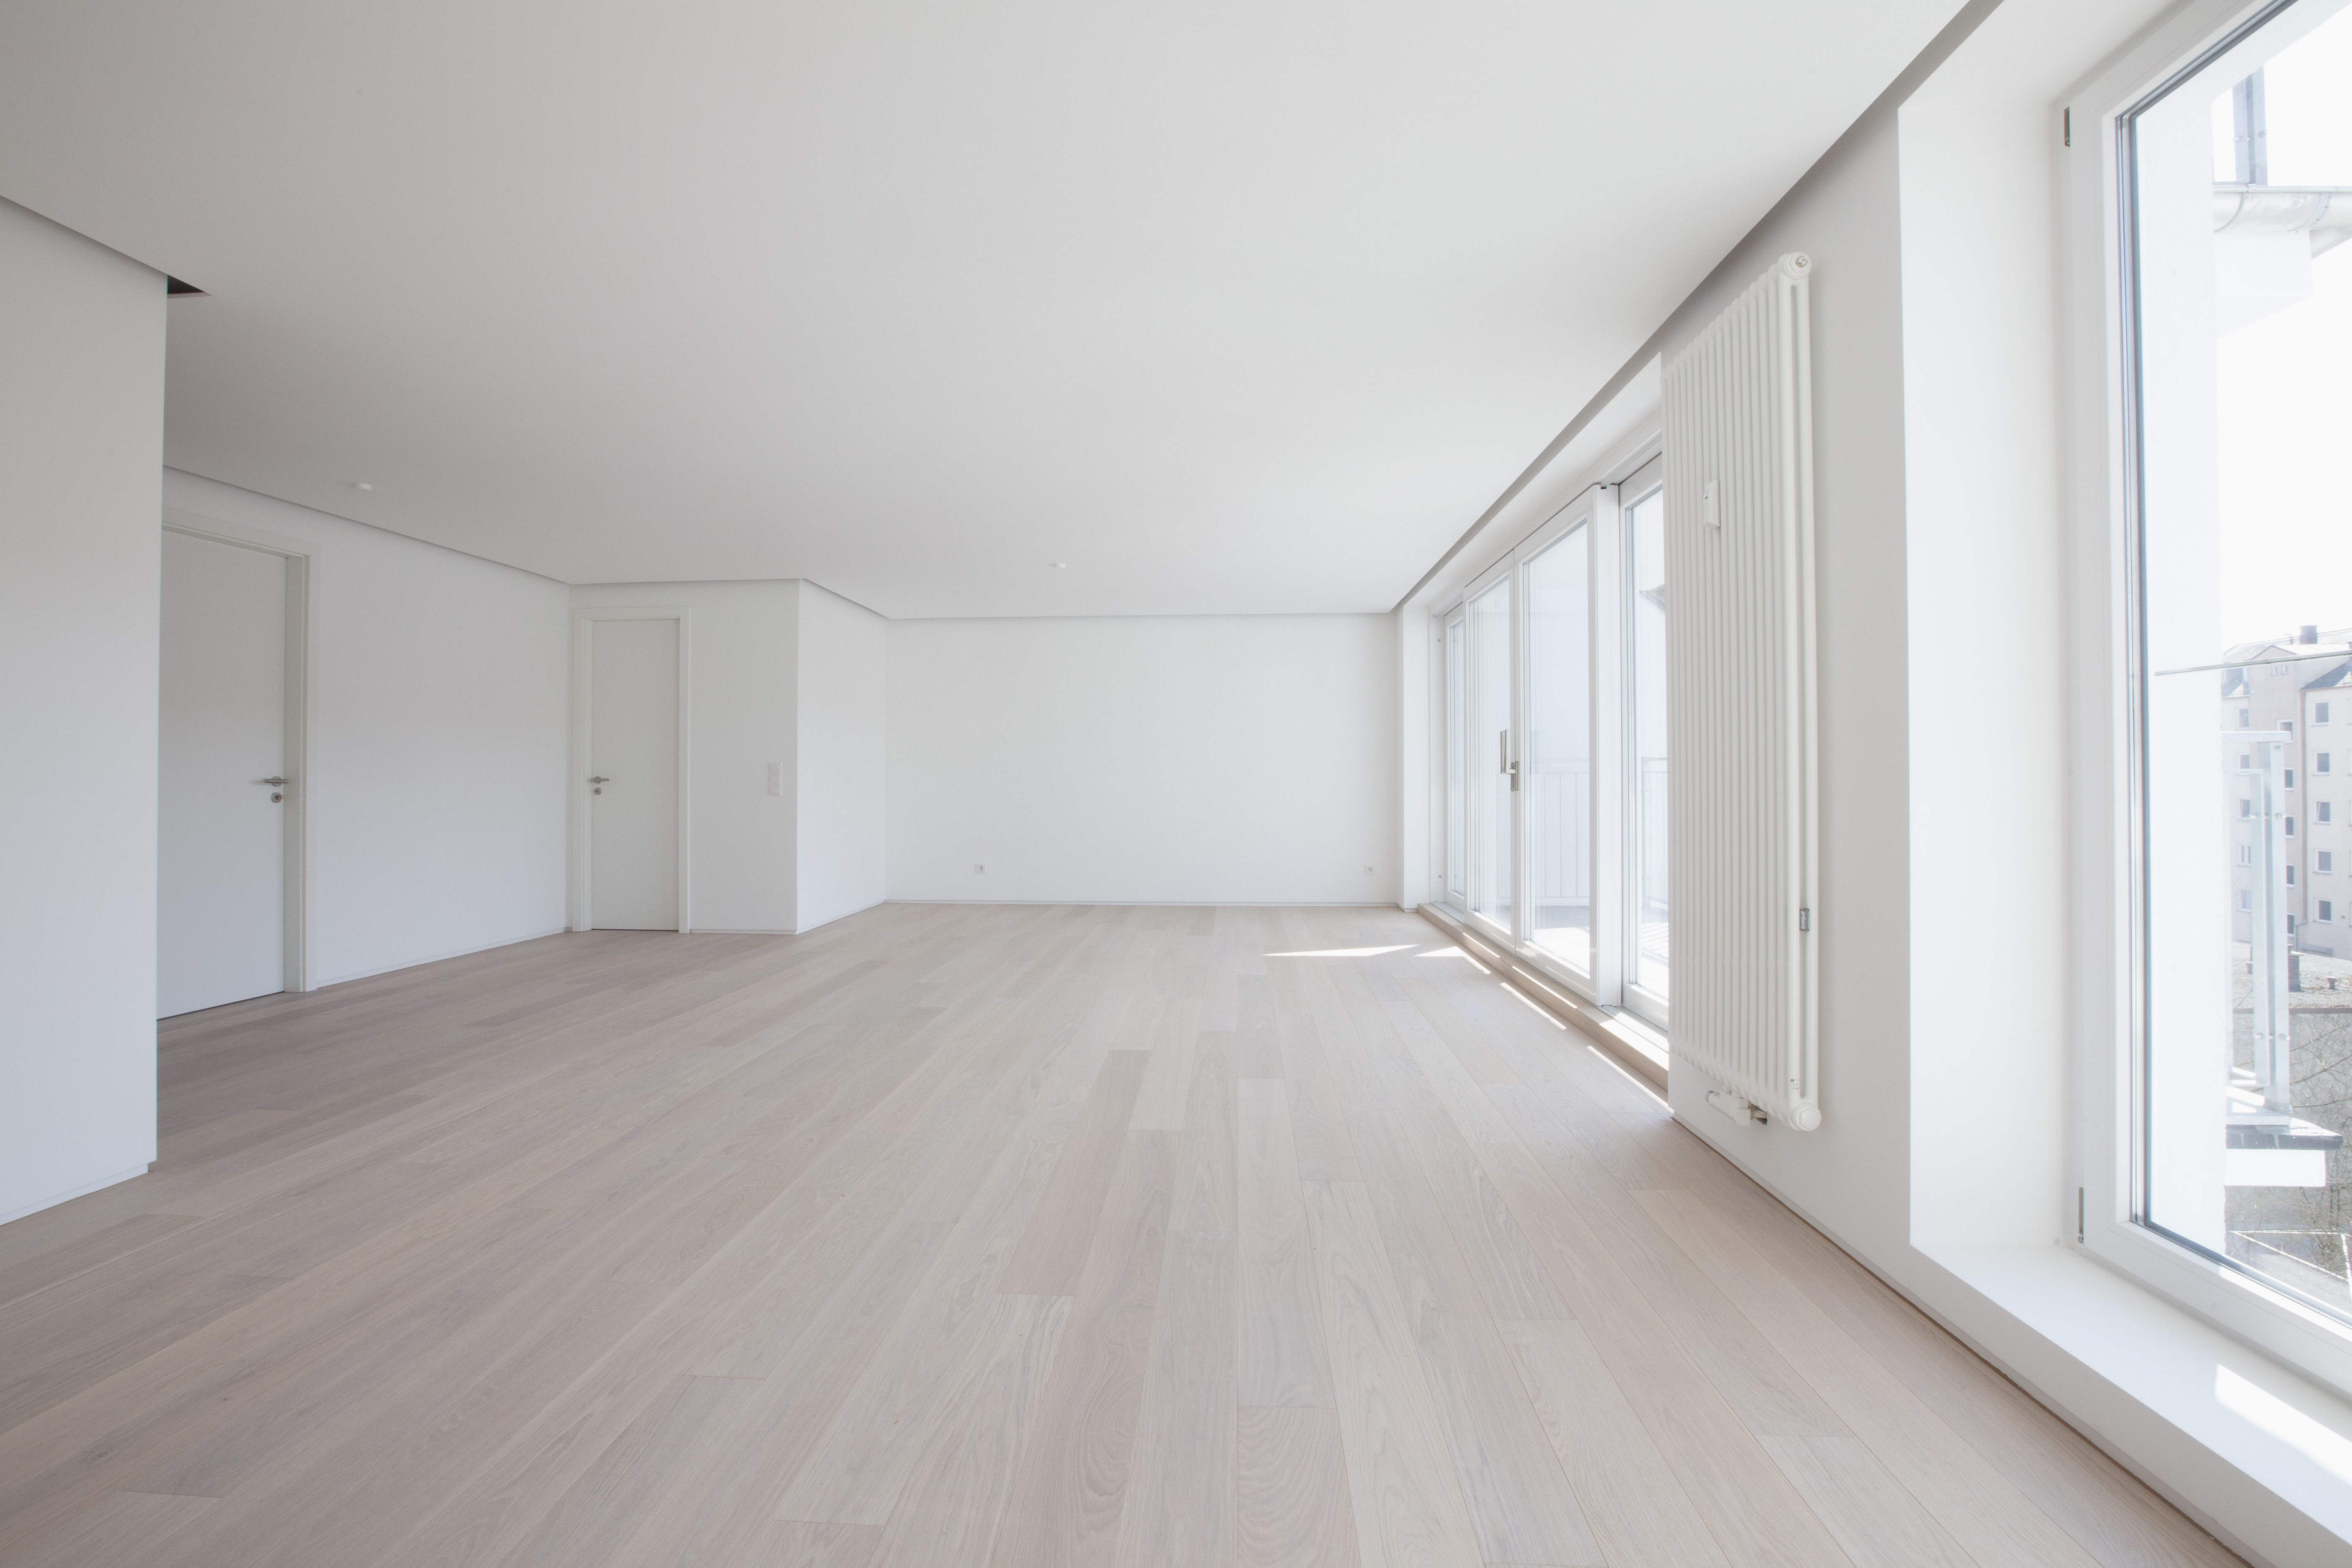 bruce hardwood and laminate floor cleaner msds of basics of favorite hybrid engineered wood floors with regard to empty living room in modern apartment 578189139 58866f903df78c2ccdecab05